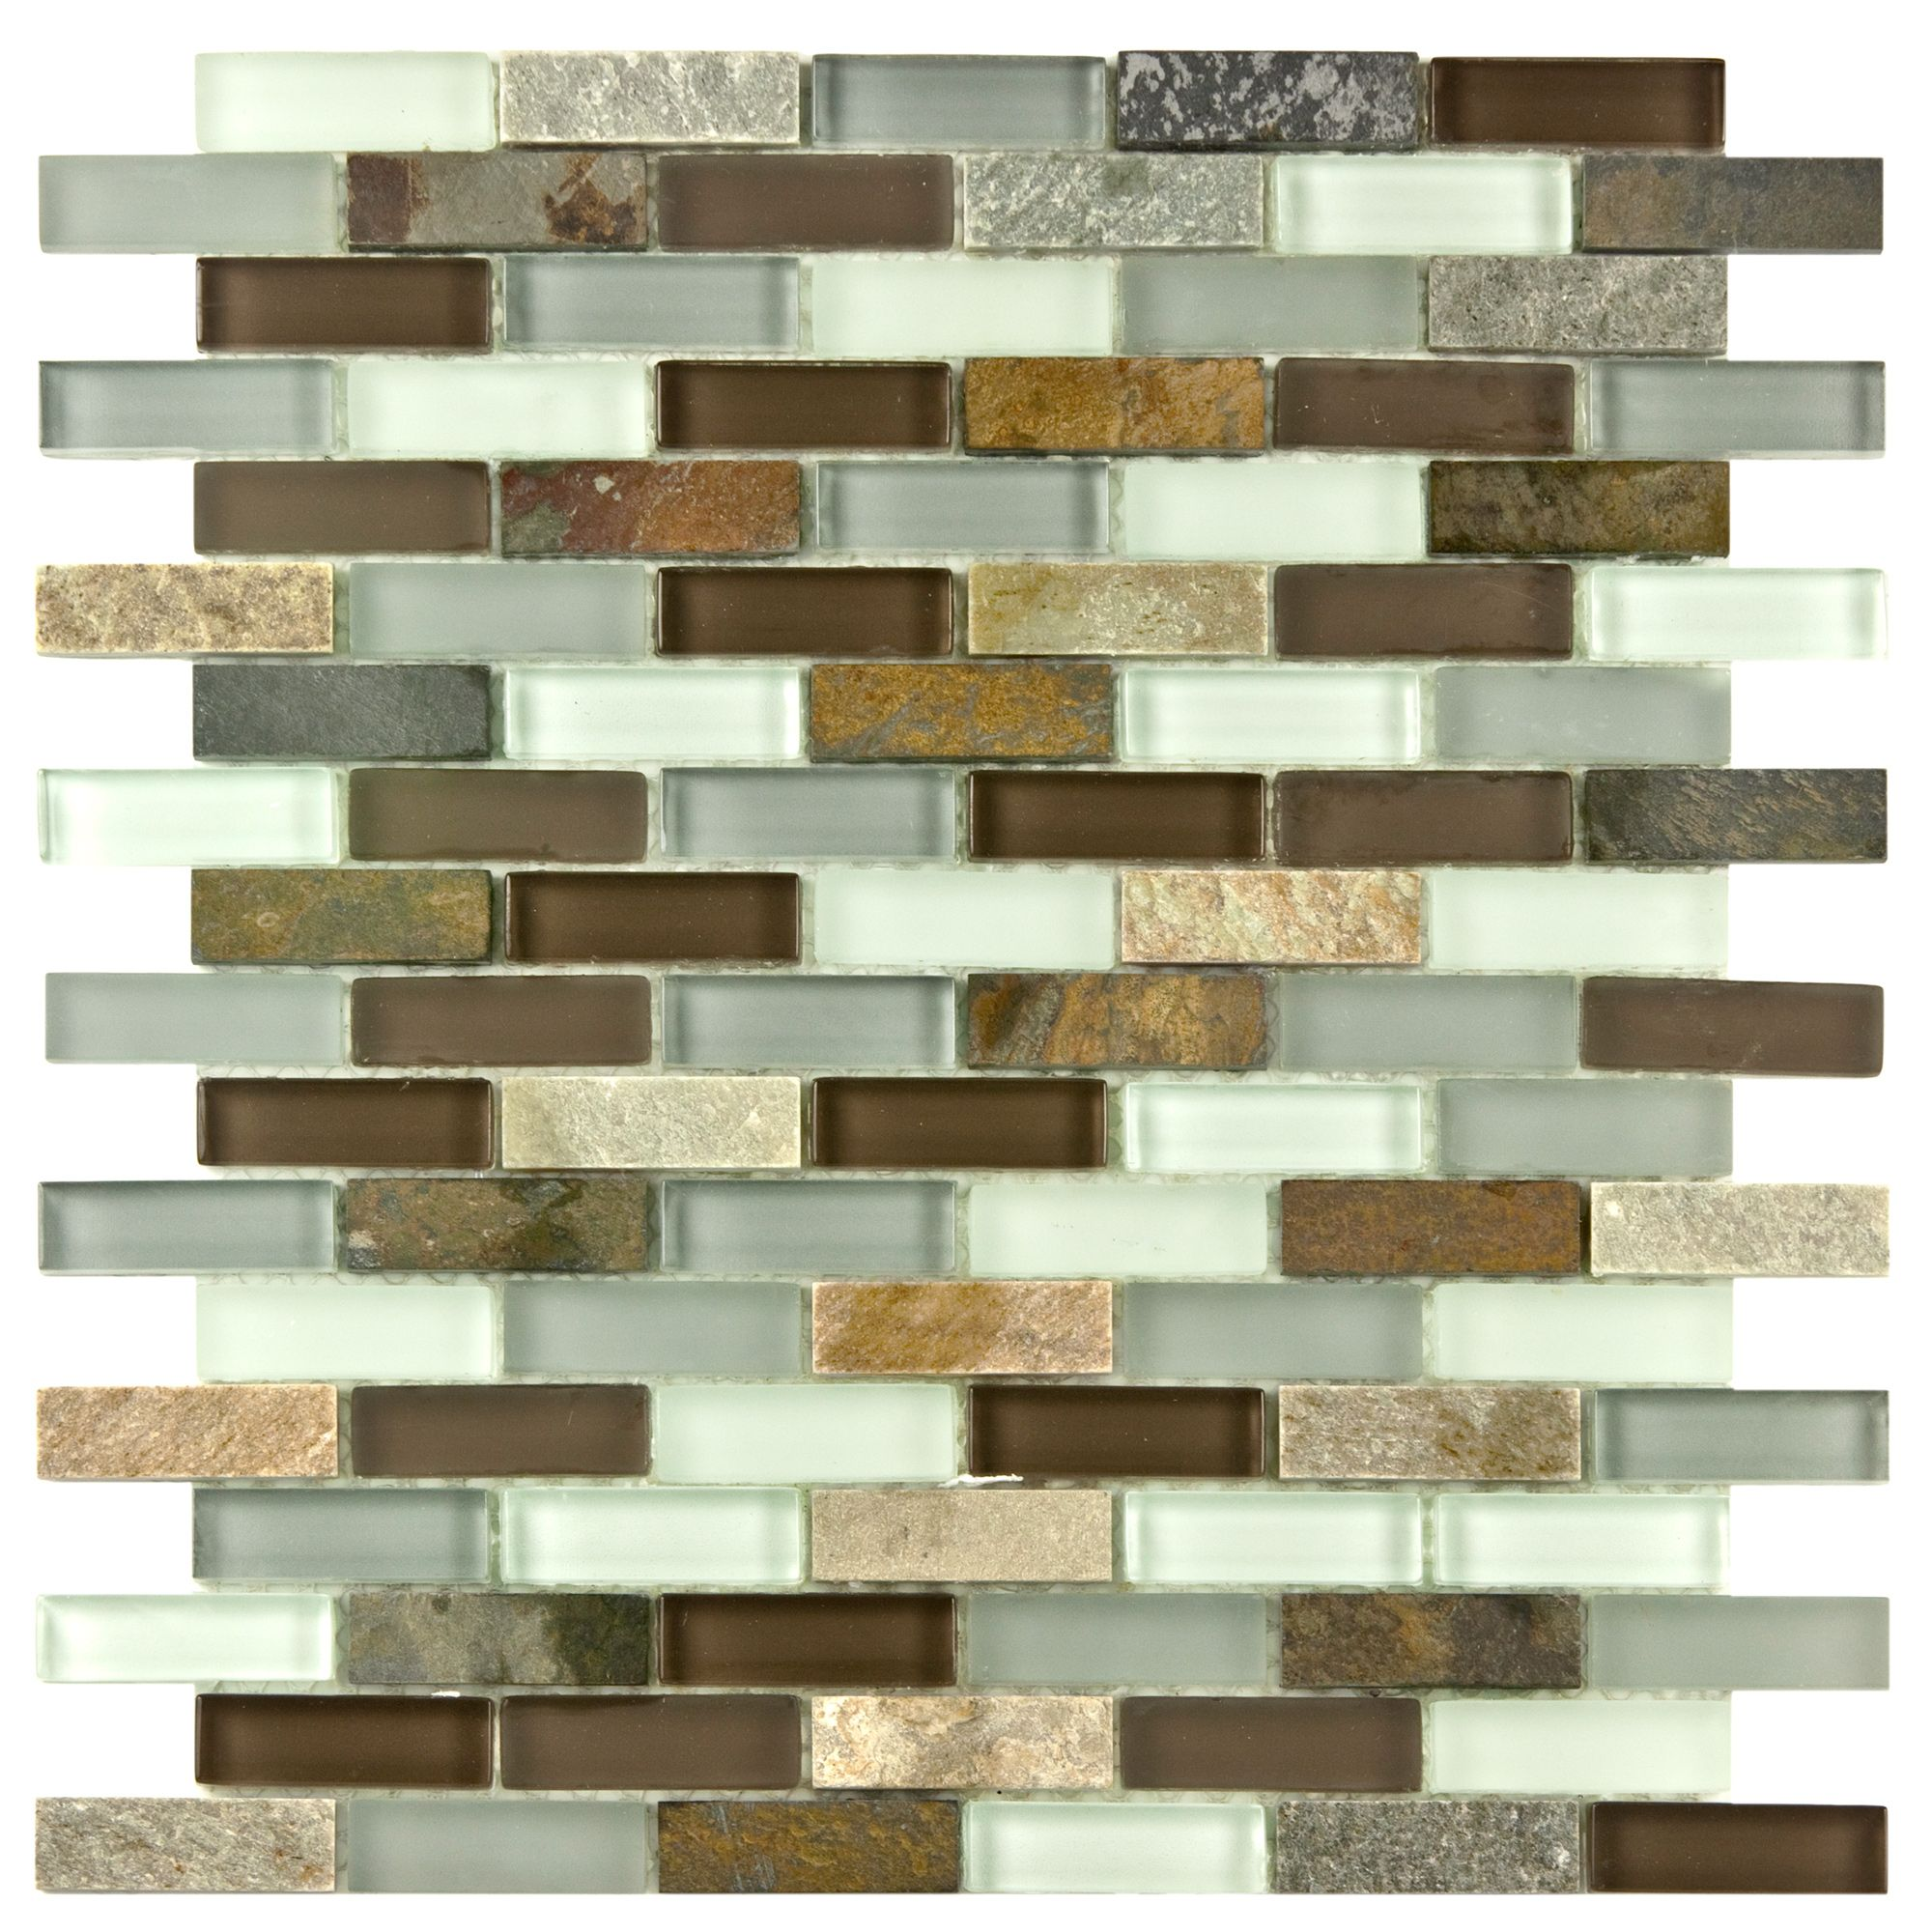 Overstock line Shopping Bedding Furniture Electronics Jewelry Clothing & more Mosaic Wall TilesStone